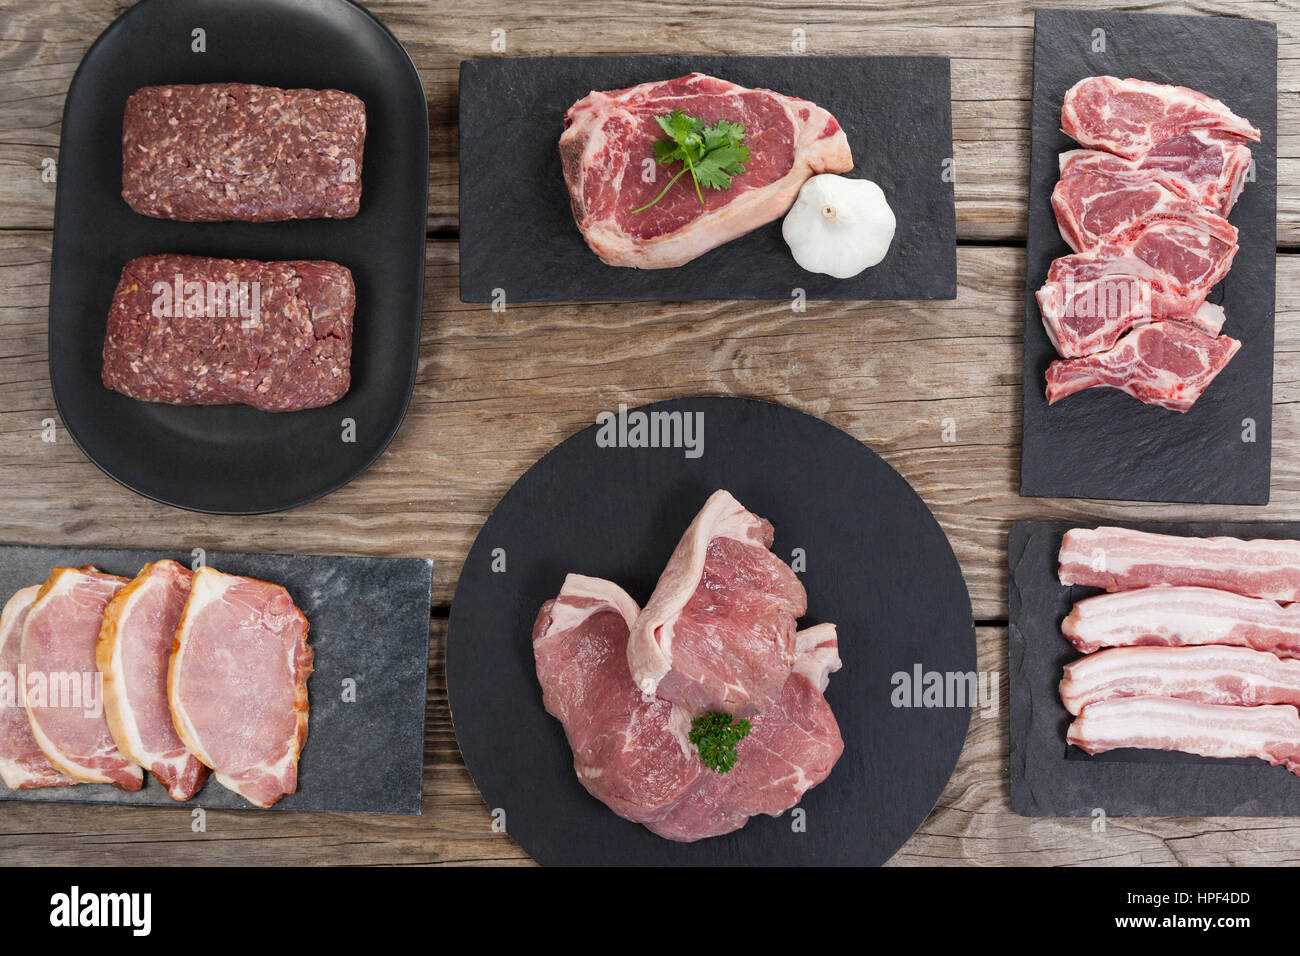 Varieties of meat on black tray against wooden background - Stock Image